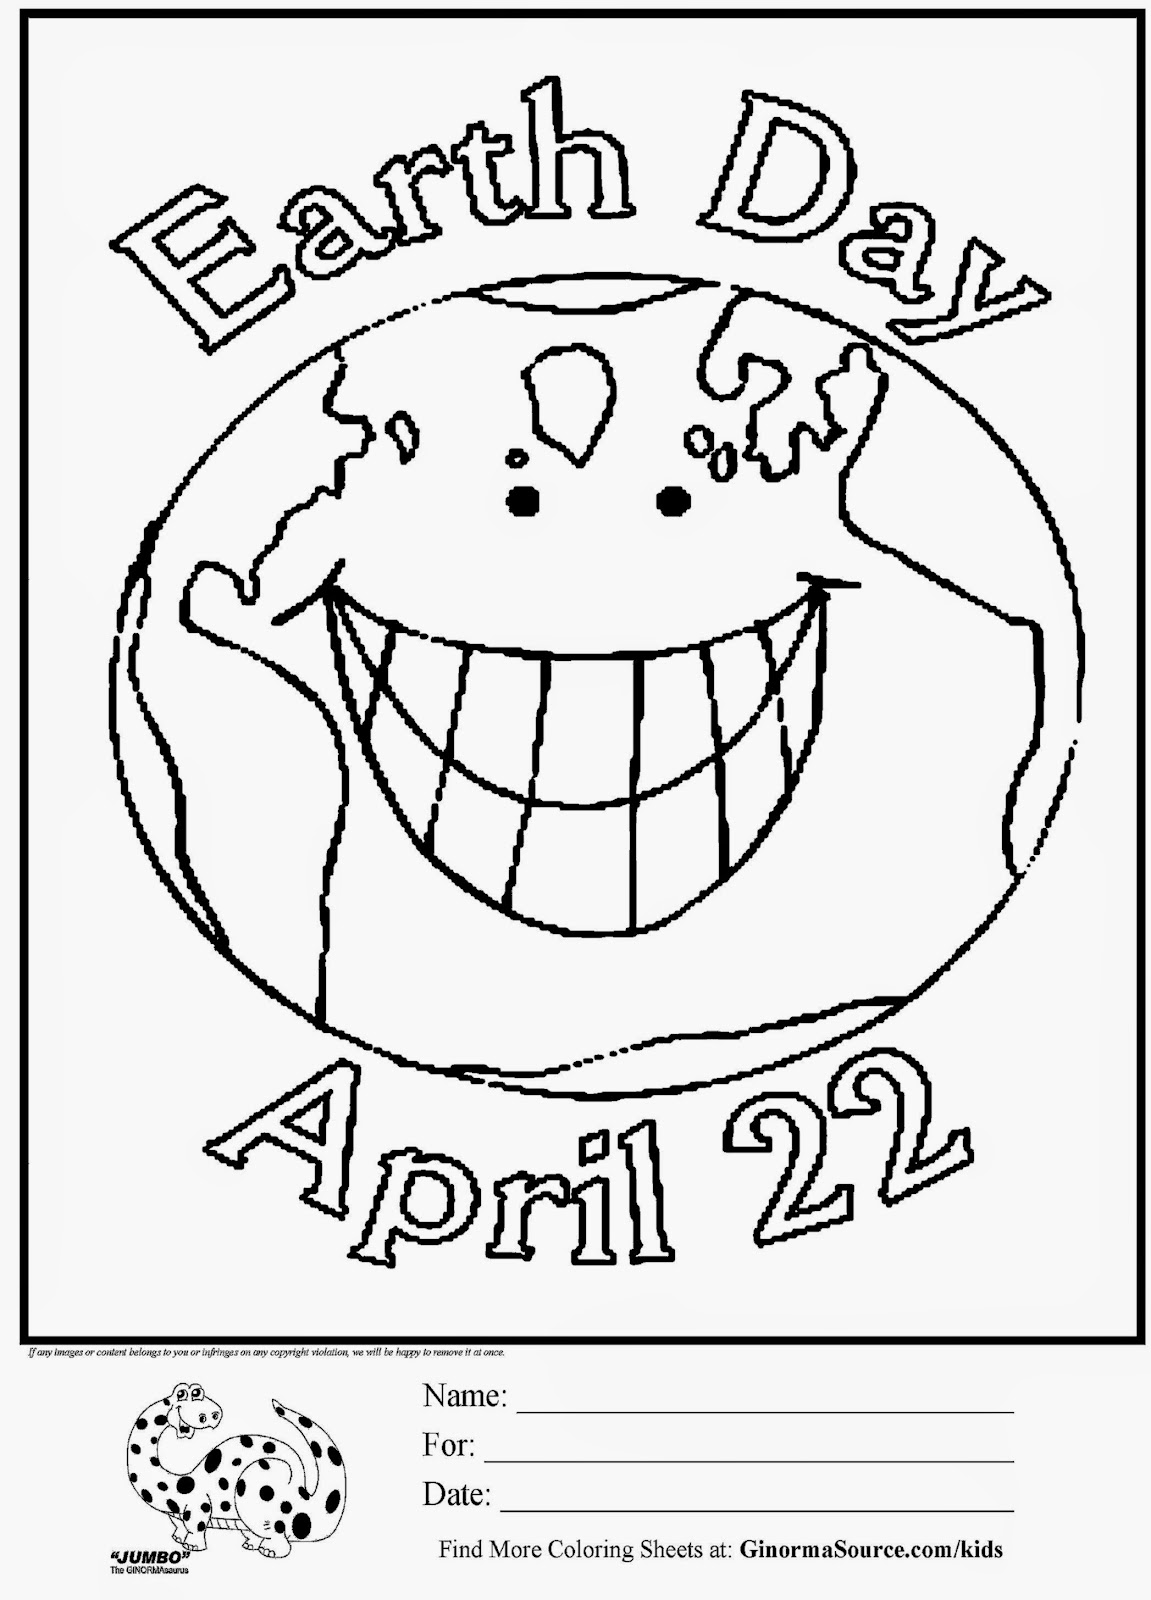 Earth Day Coloring Pages Pdf : Earth day coloring page pages